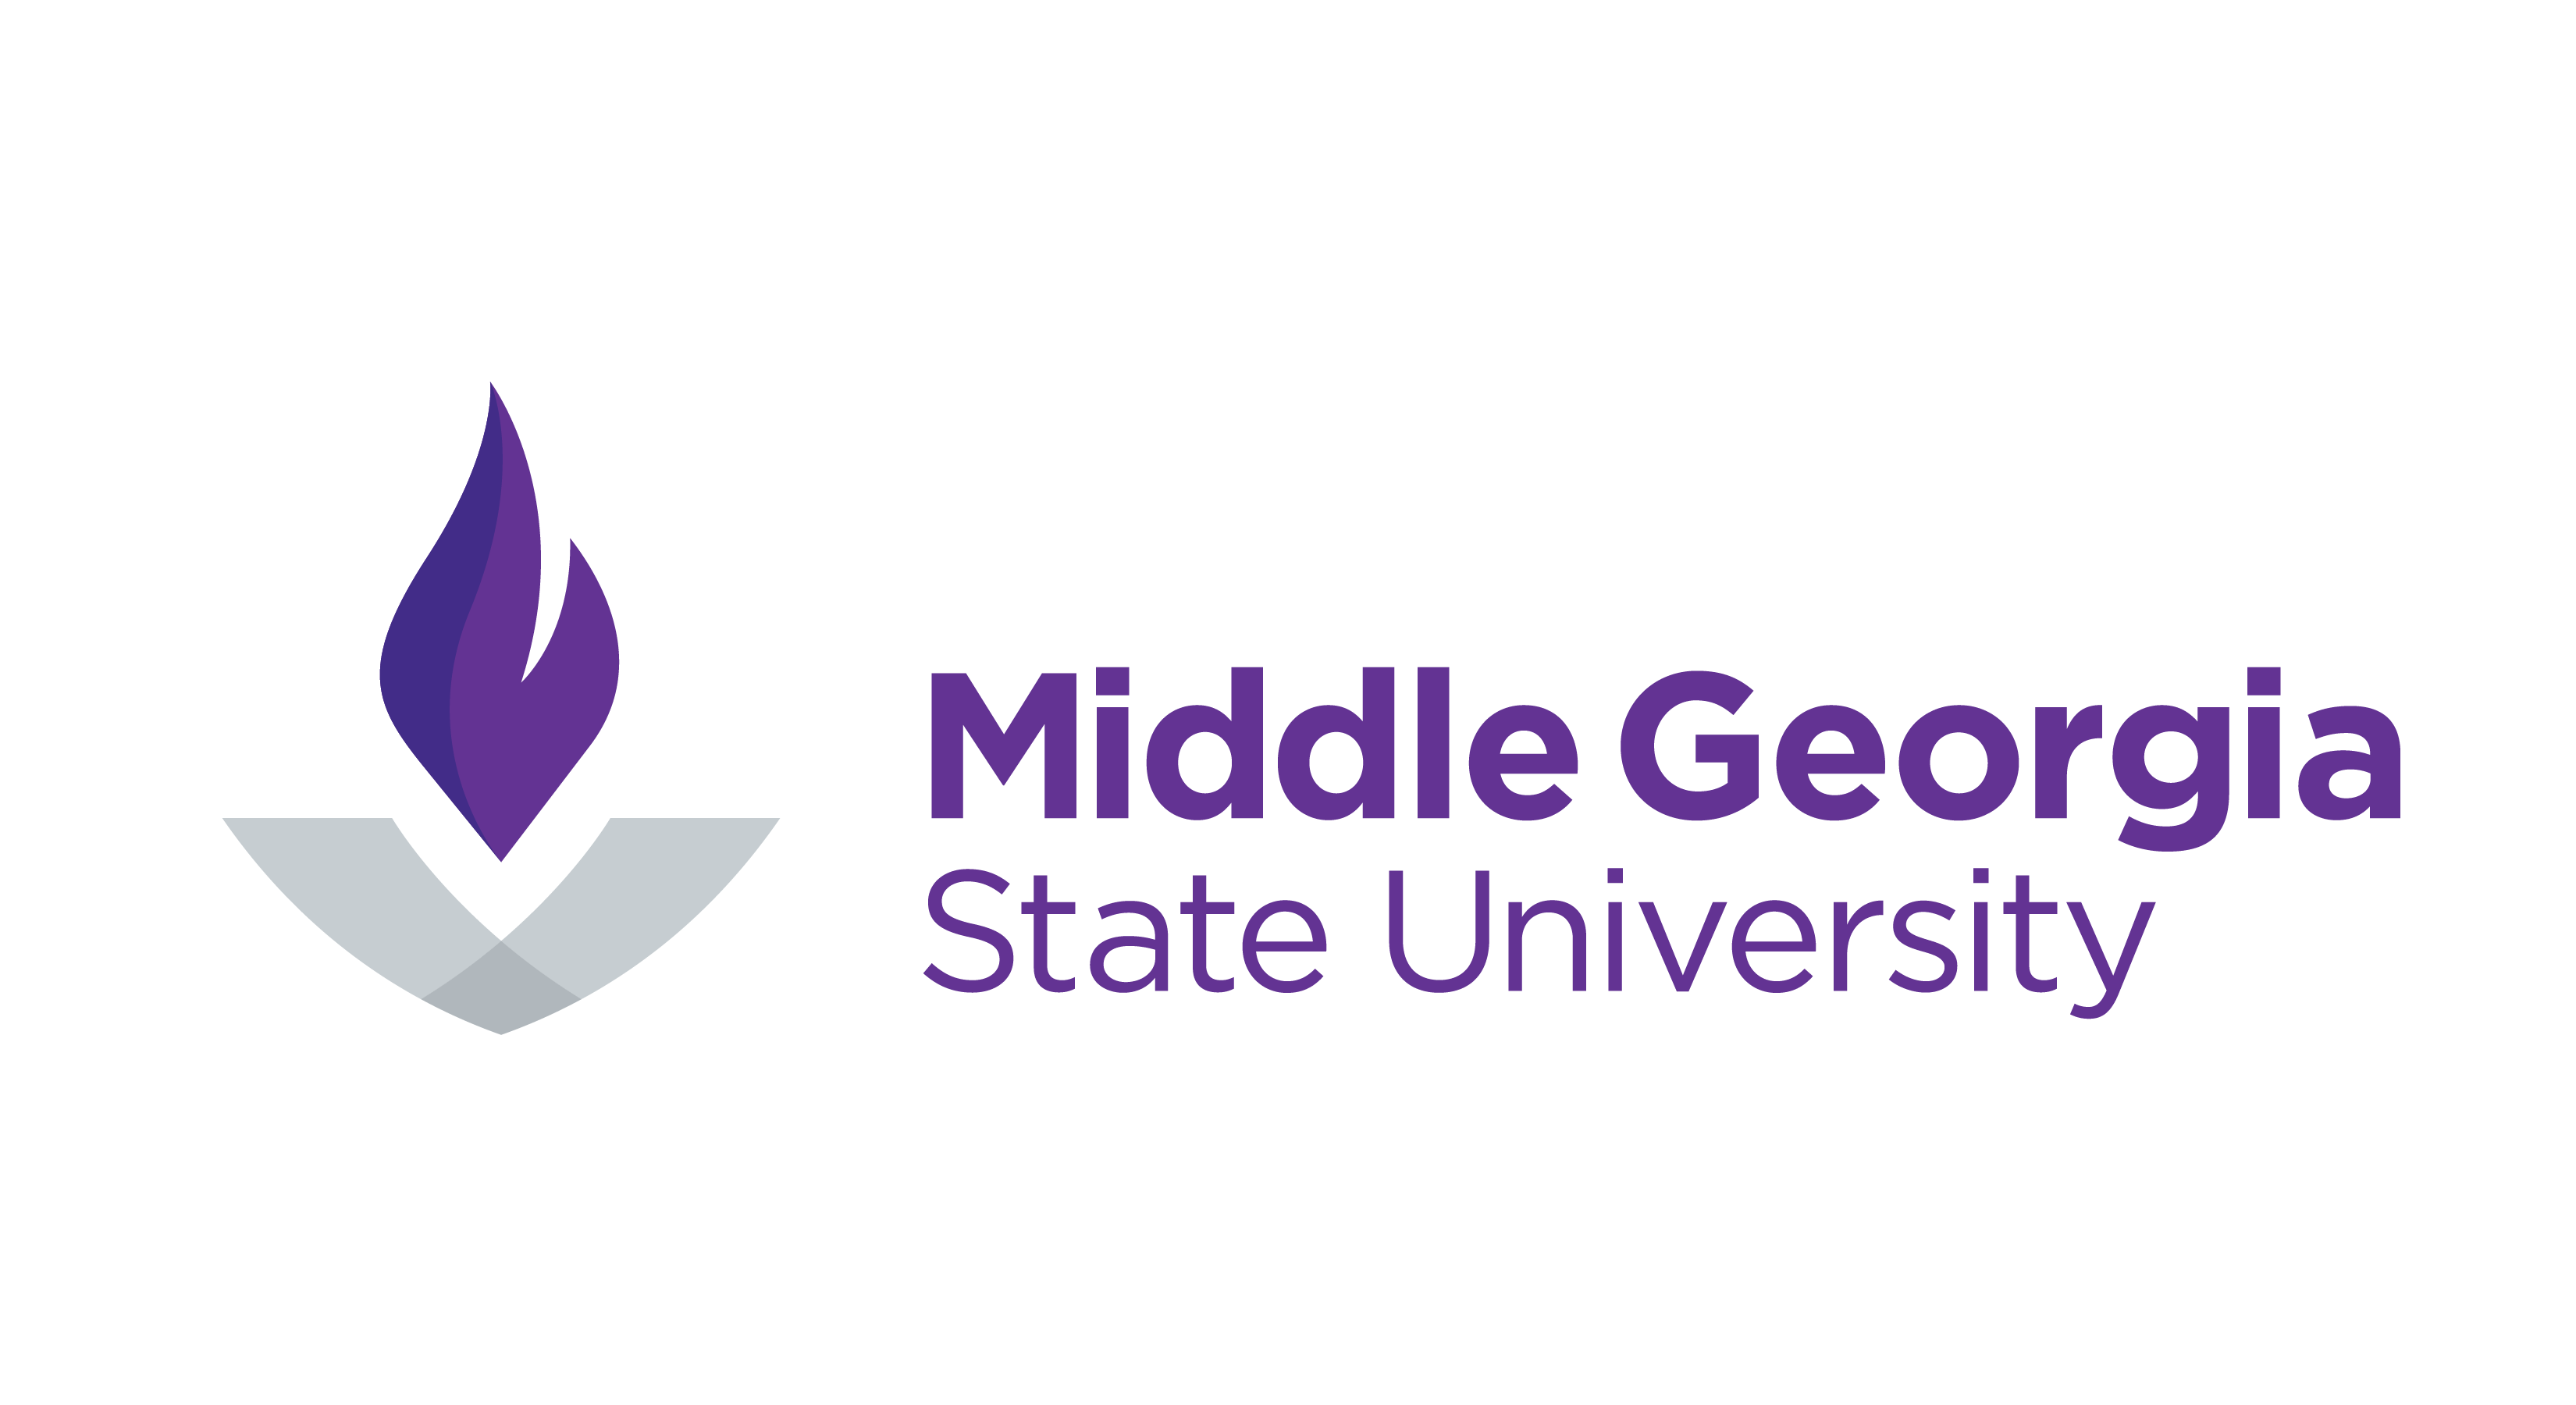 Middle Georgia State University - List For Georgia State University 2020 Calendar